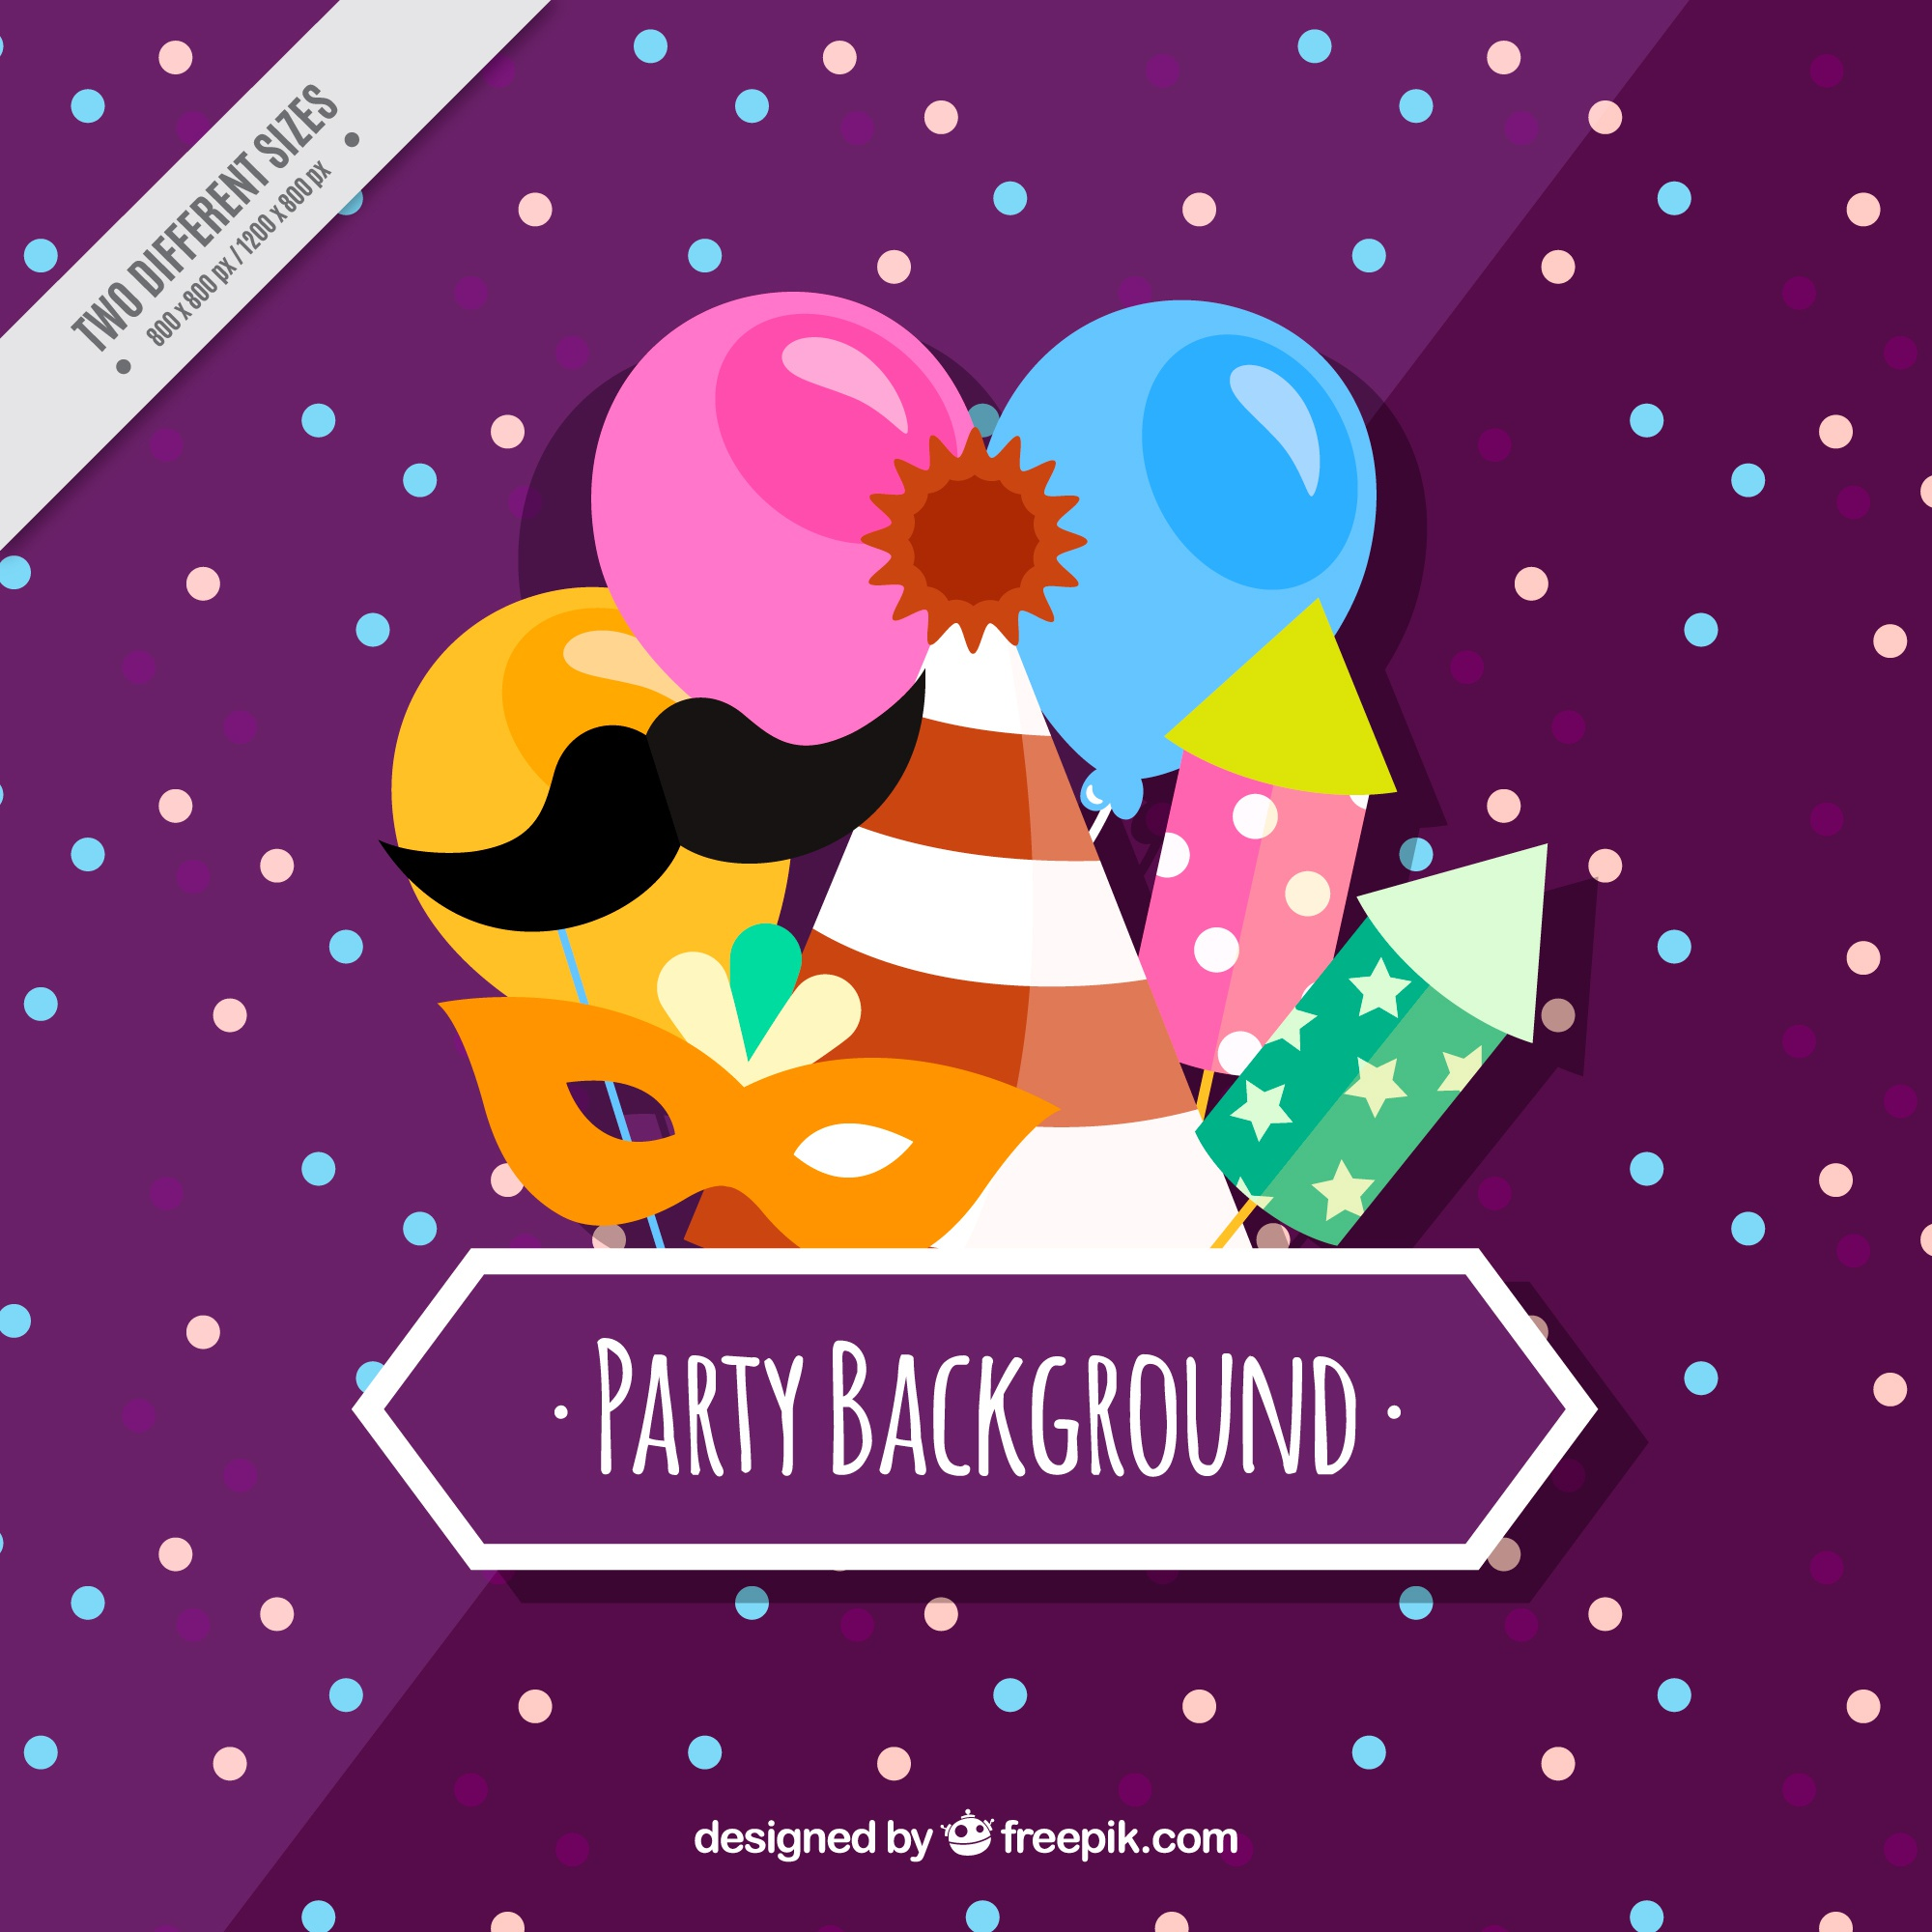 Purple party background with colorful items